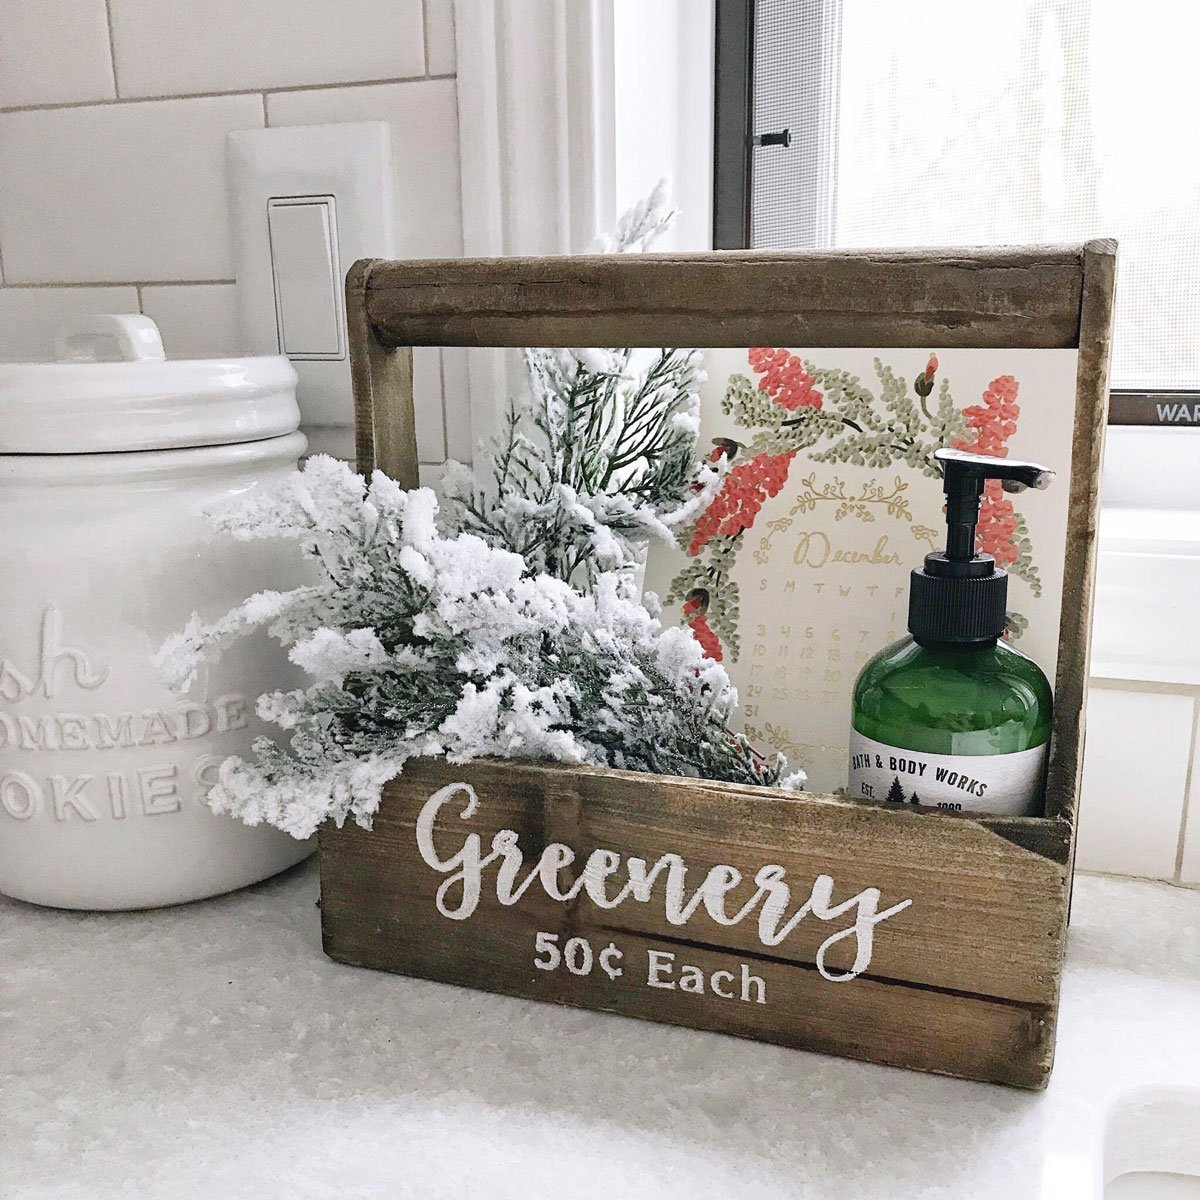 wooden greenery box next to sink